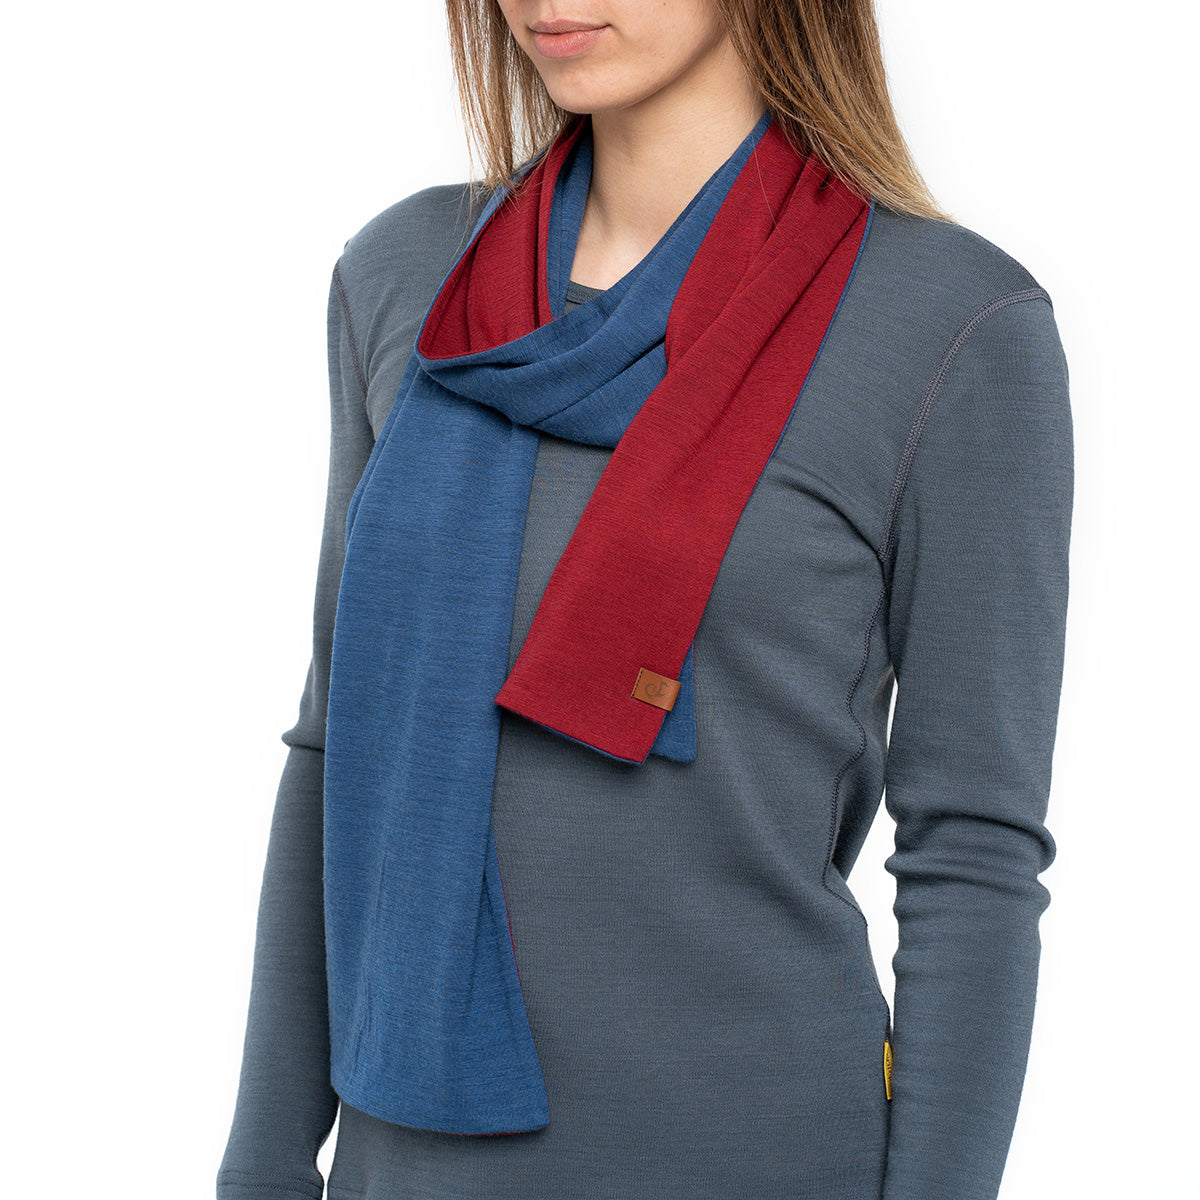 menique Women's Merino Scarf Denim/Royal Cherry Color